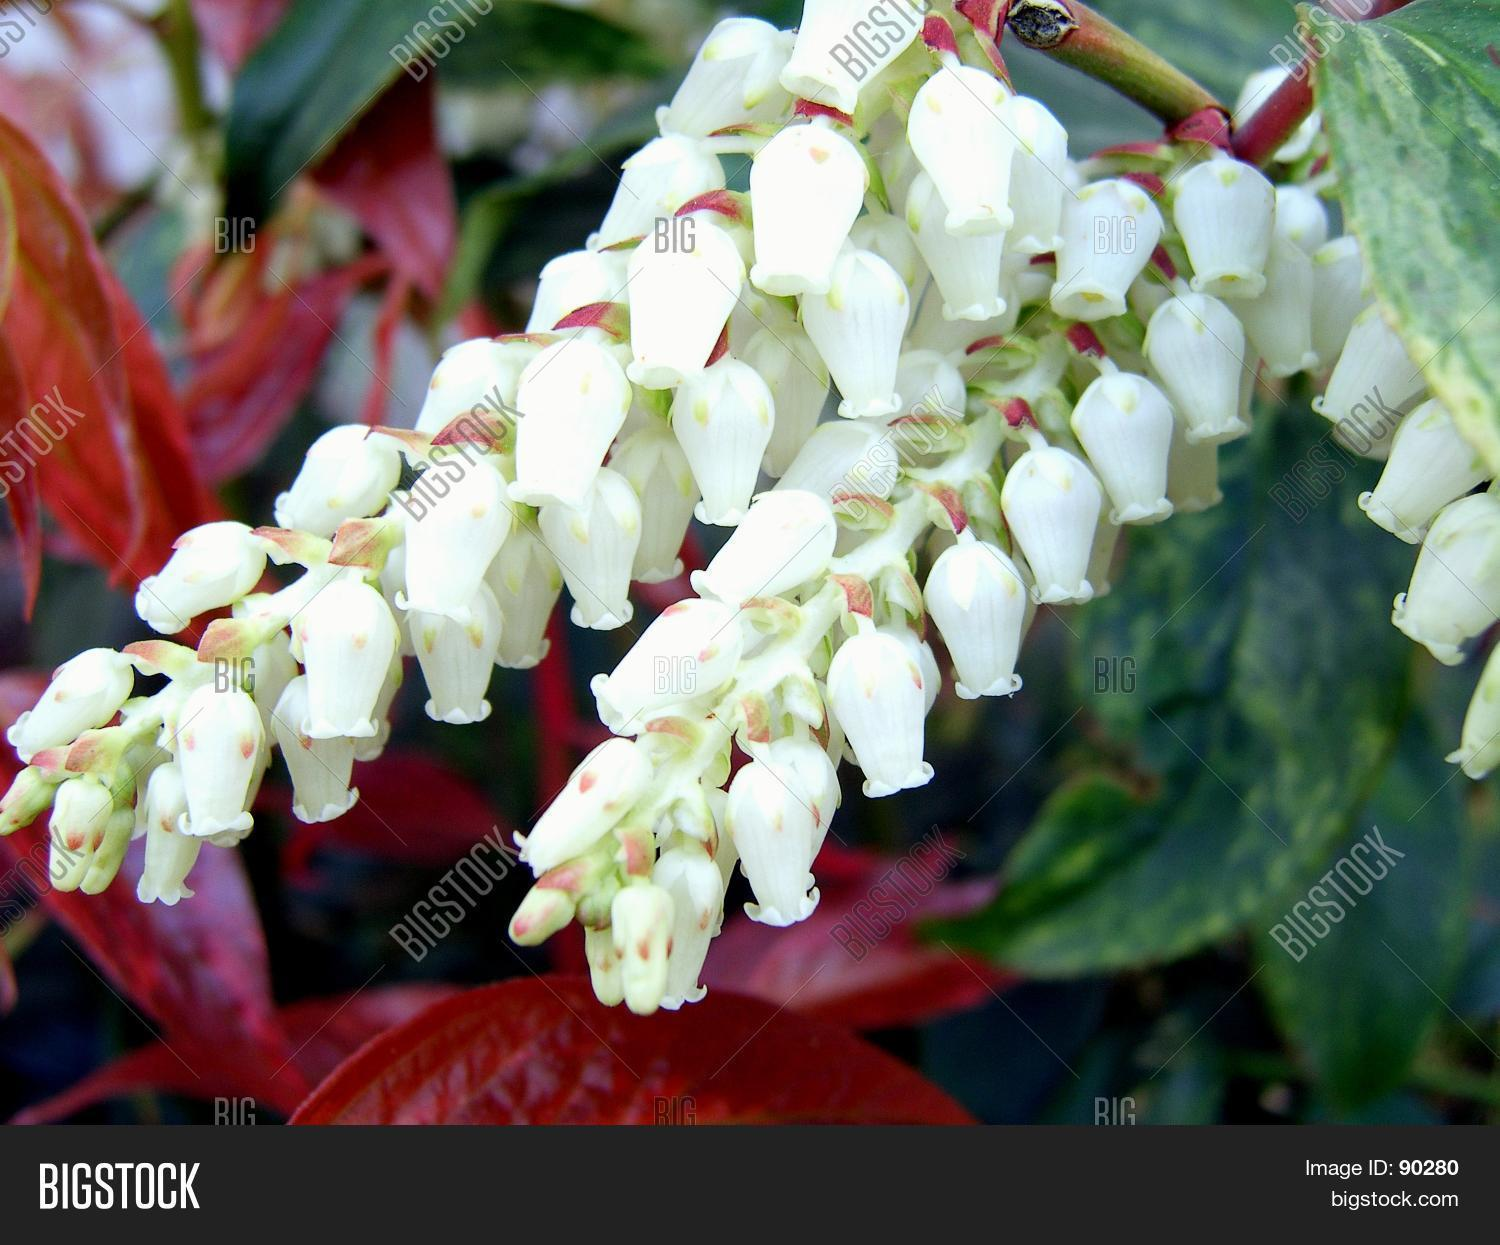 White Bell Flowers Image Photo Free Trial Bigstock